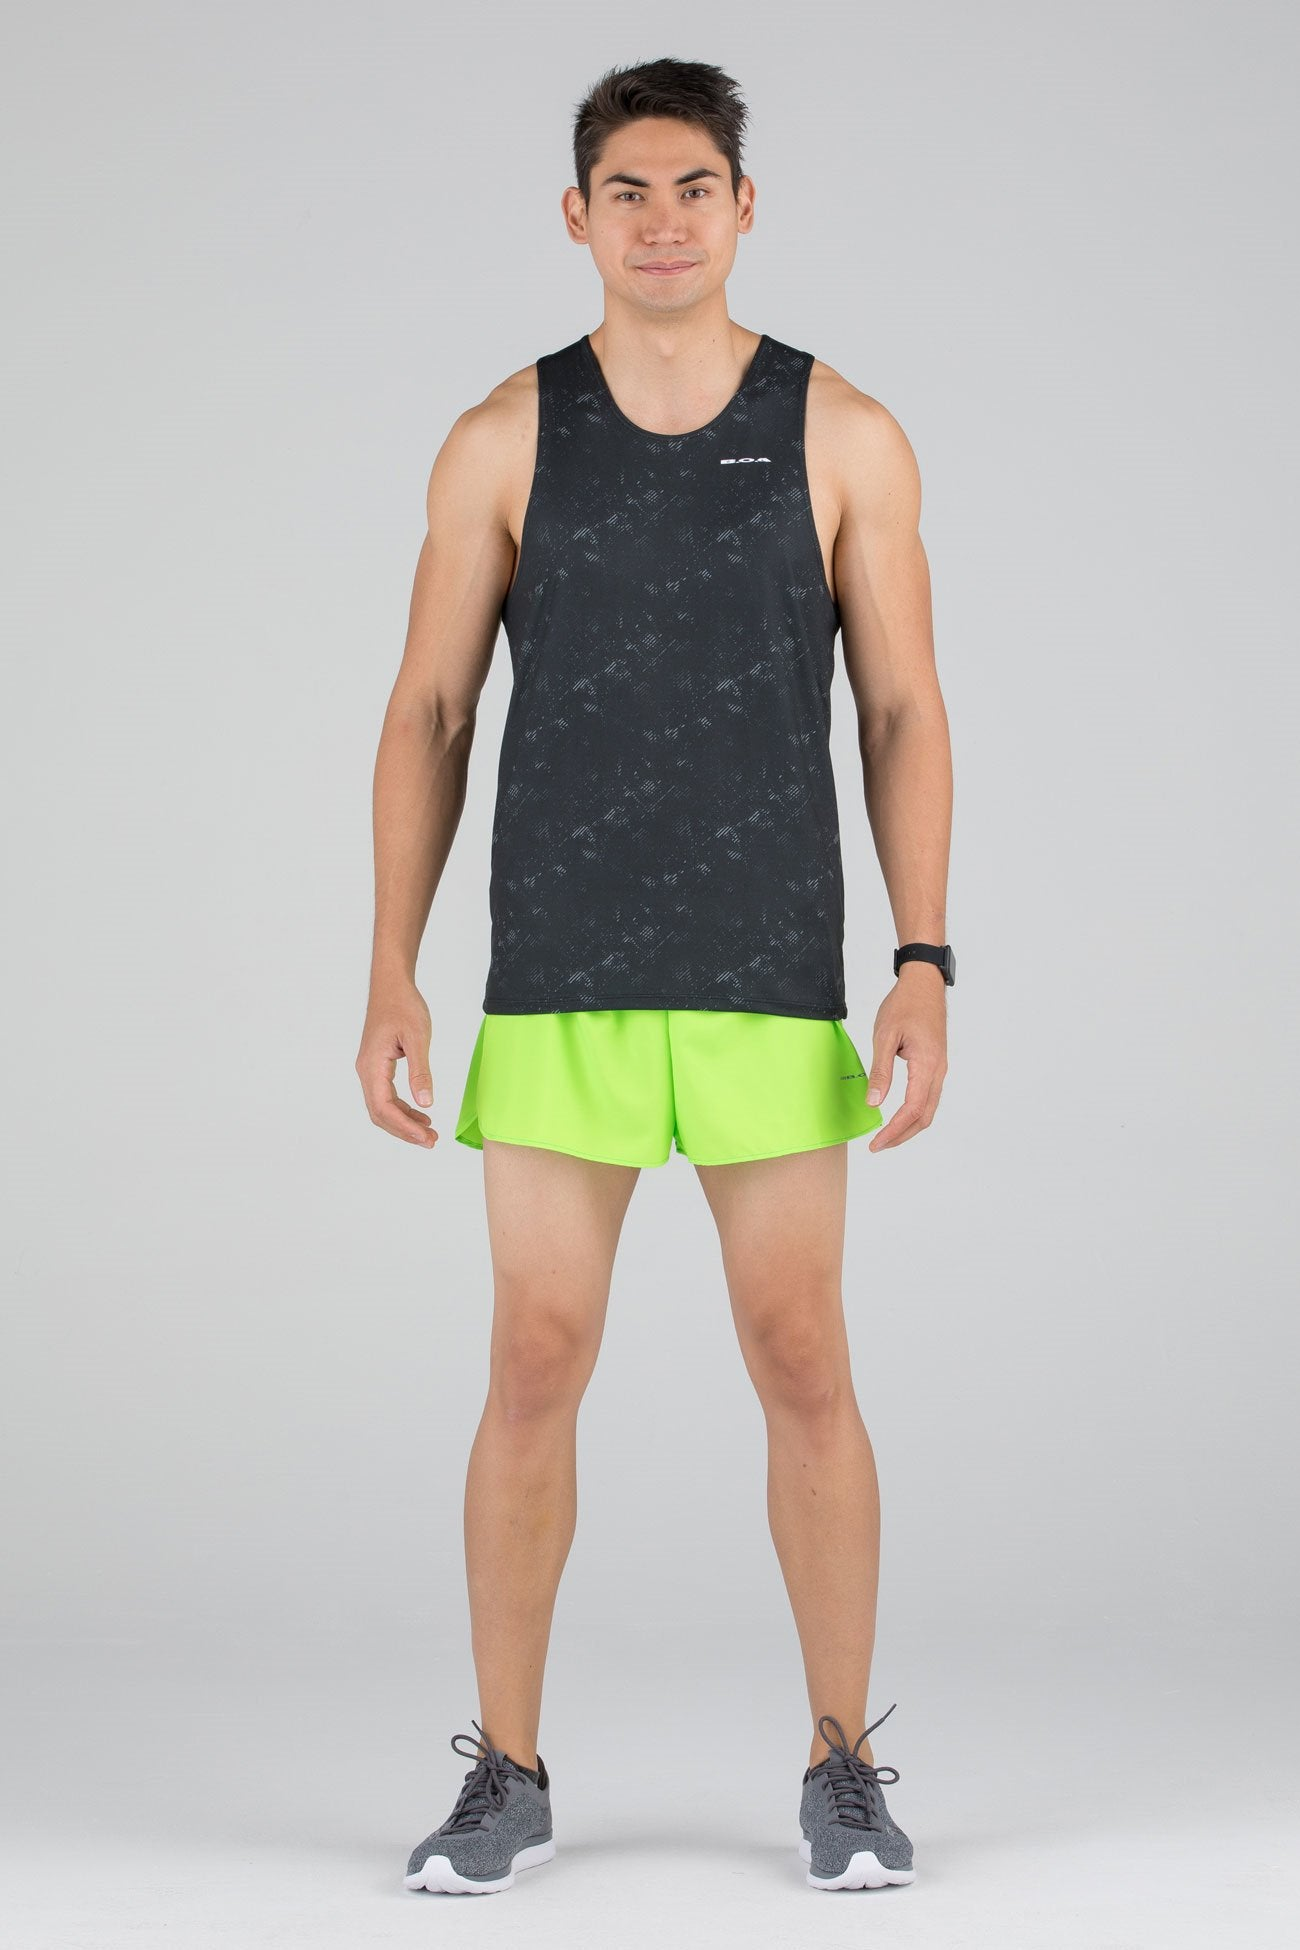 b564fb5f7c1 MENS HYPERSOFT RUNNING SINGLET- ILLUSION BLACK – BOA